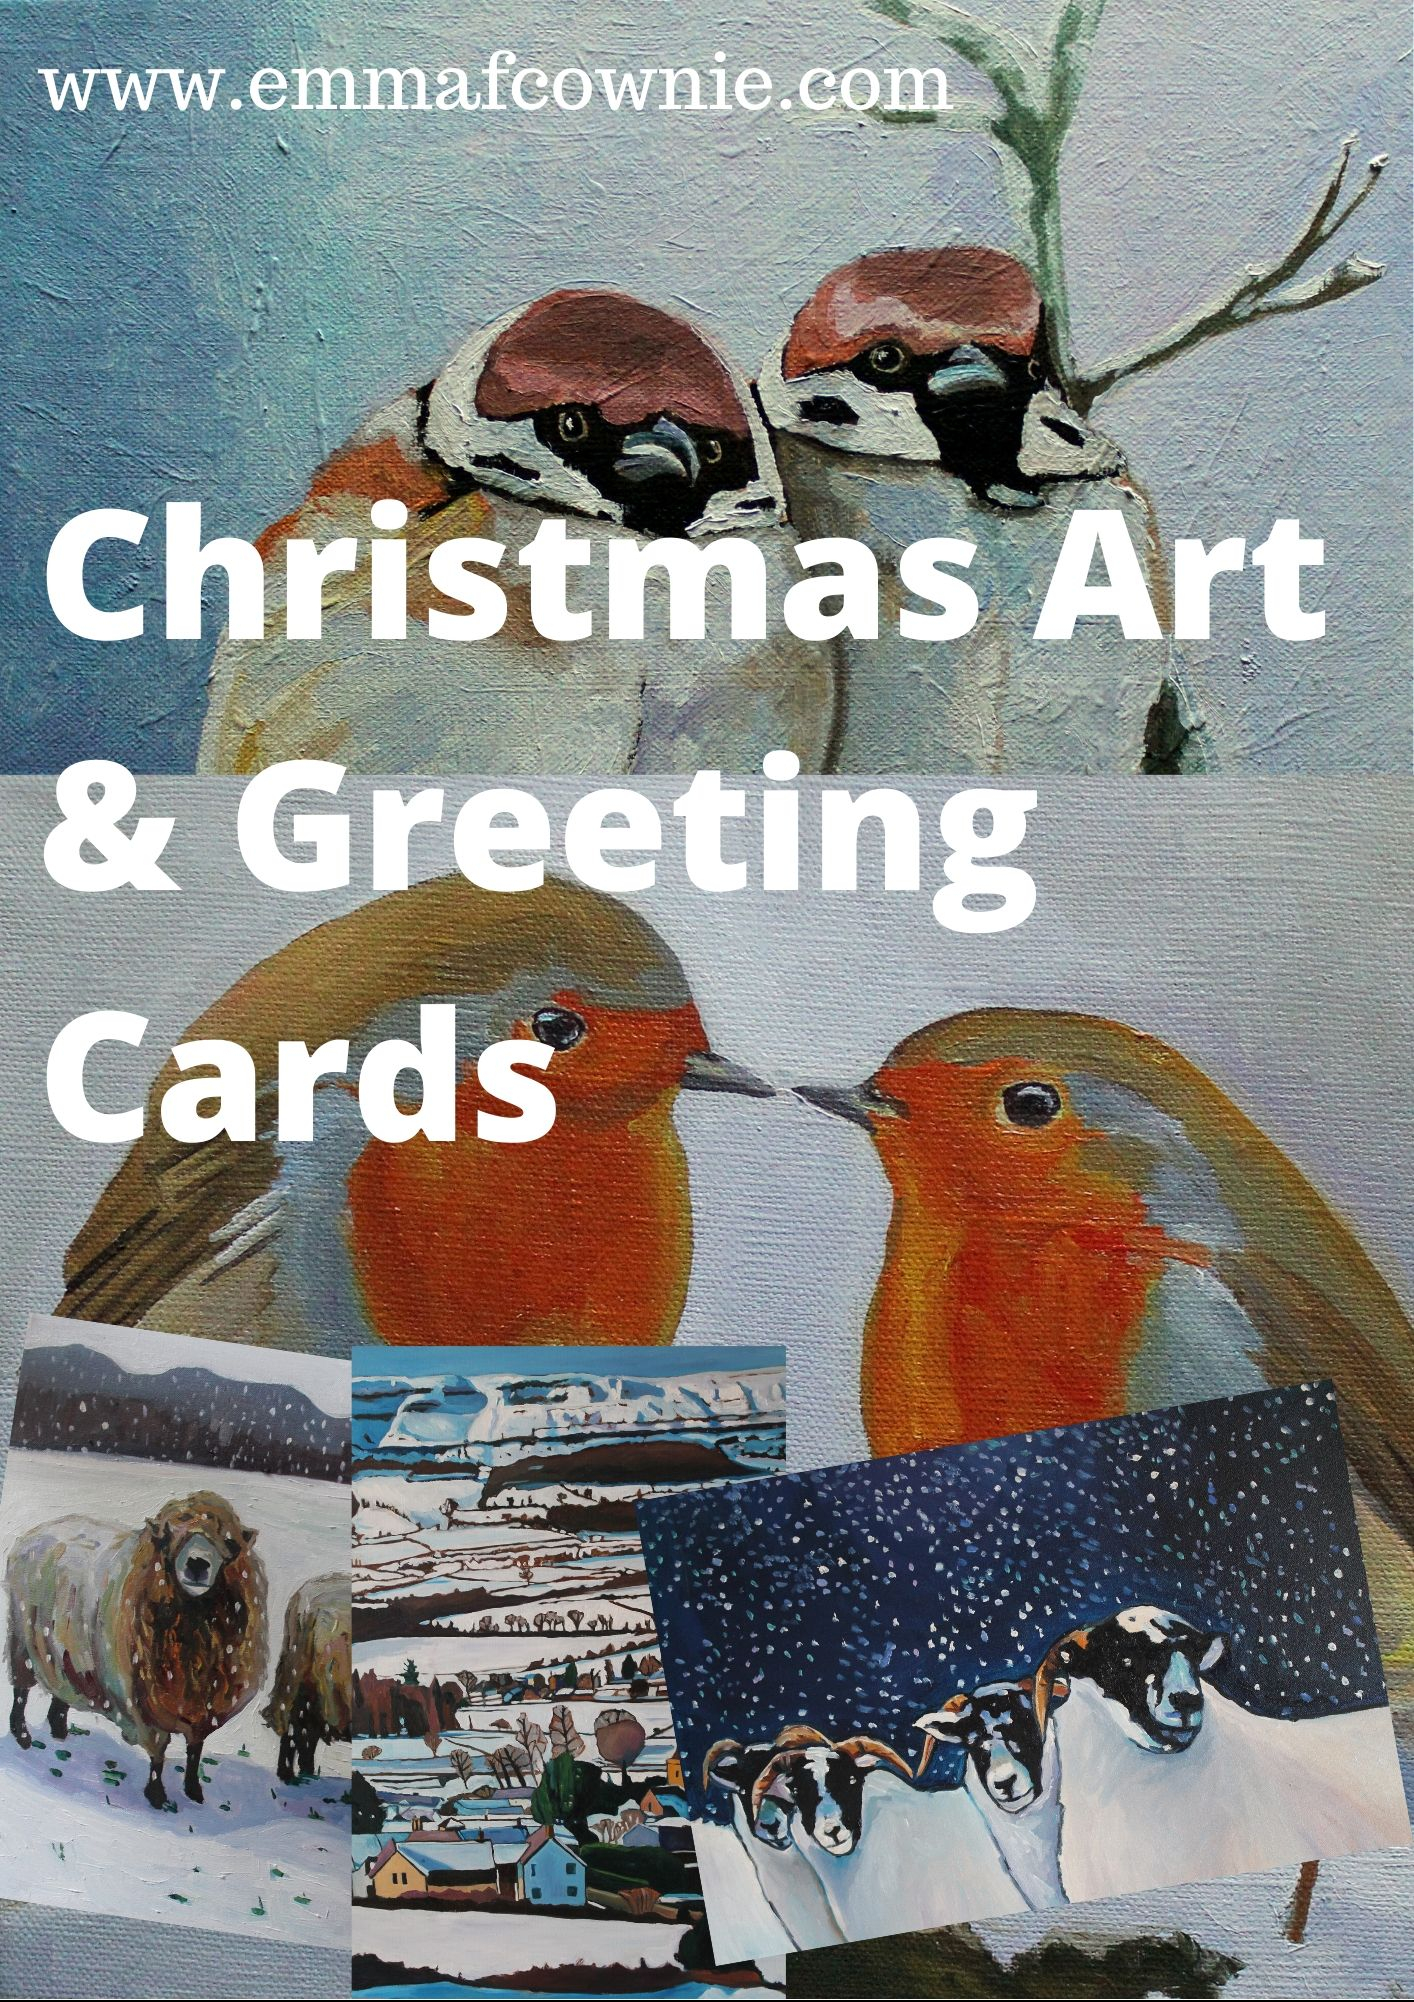 Christmas Art & Greeting Cards